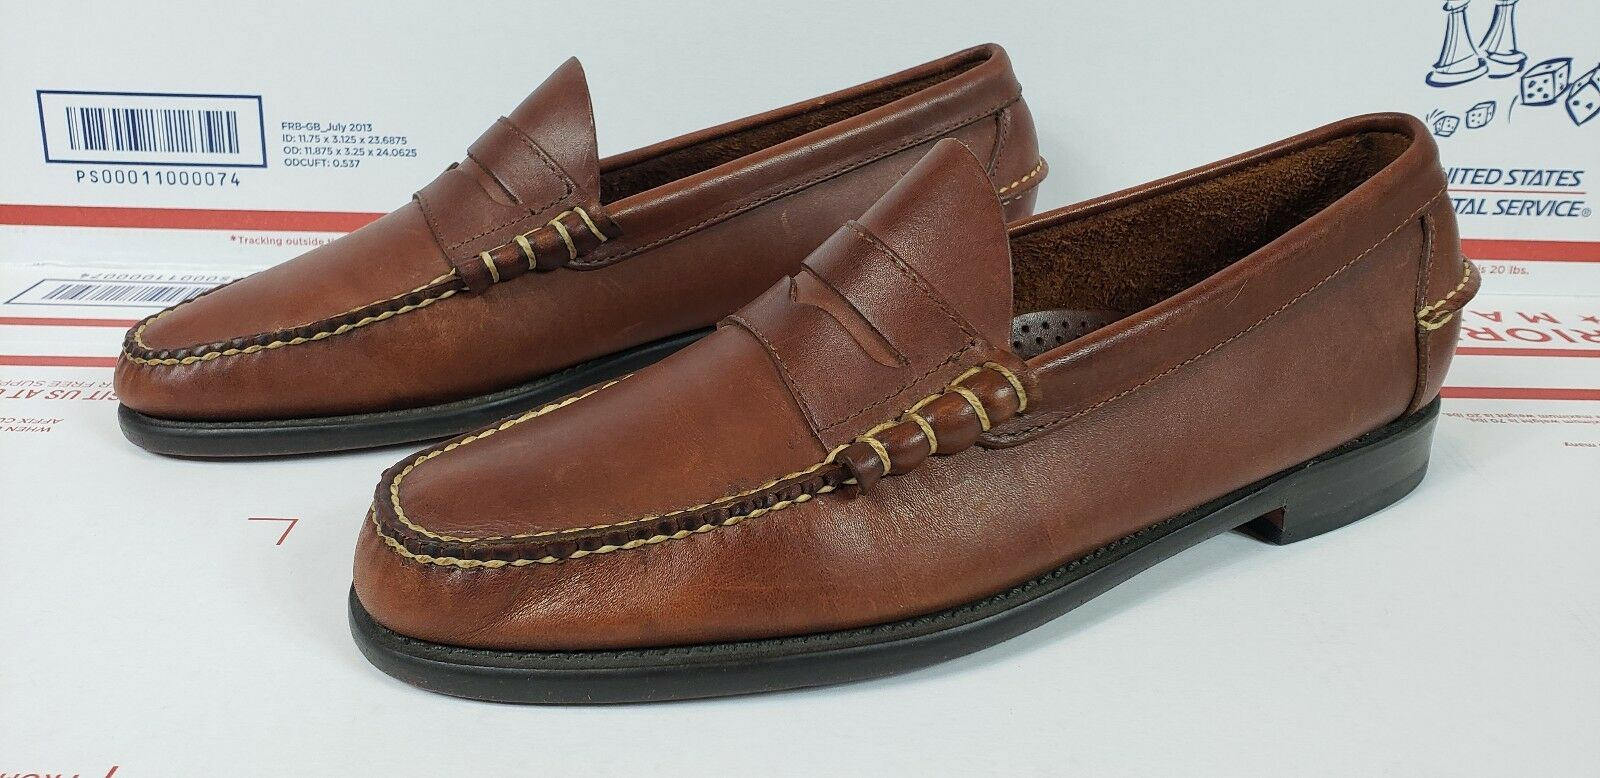 LL Bean Slip On Penny Loafers Boat shoes 10 D Brown Leather Mens